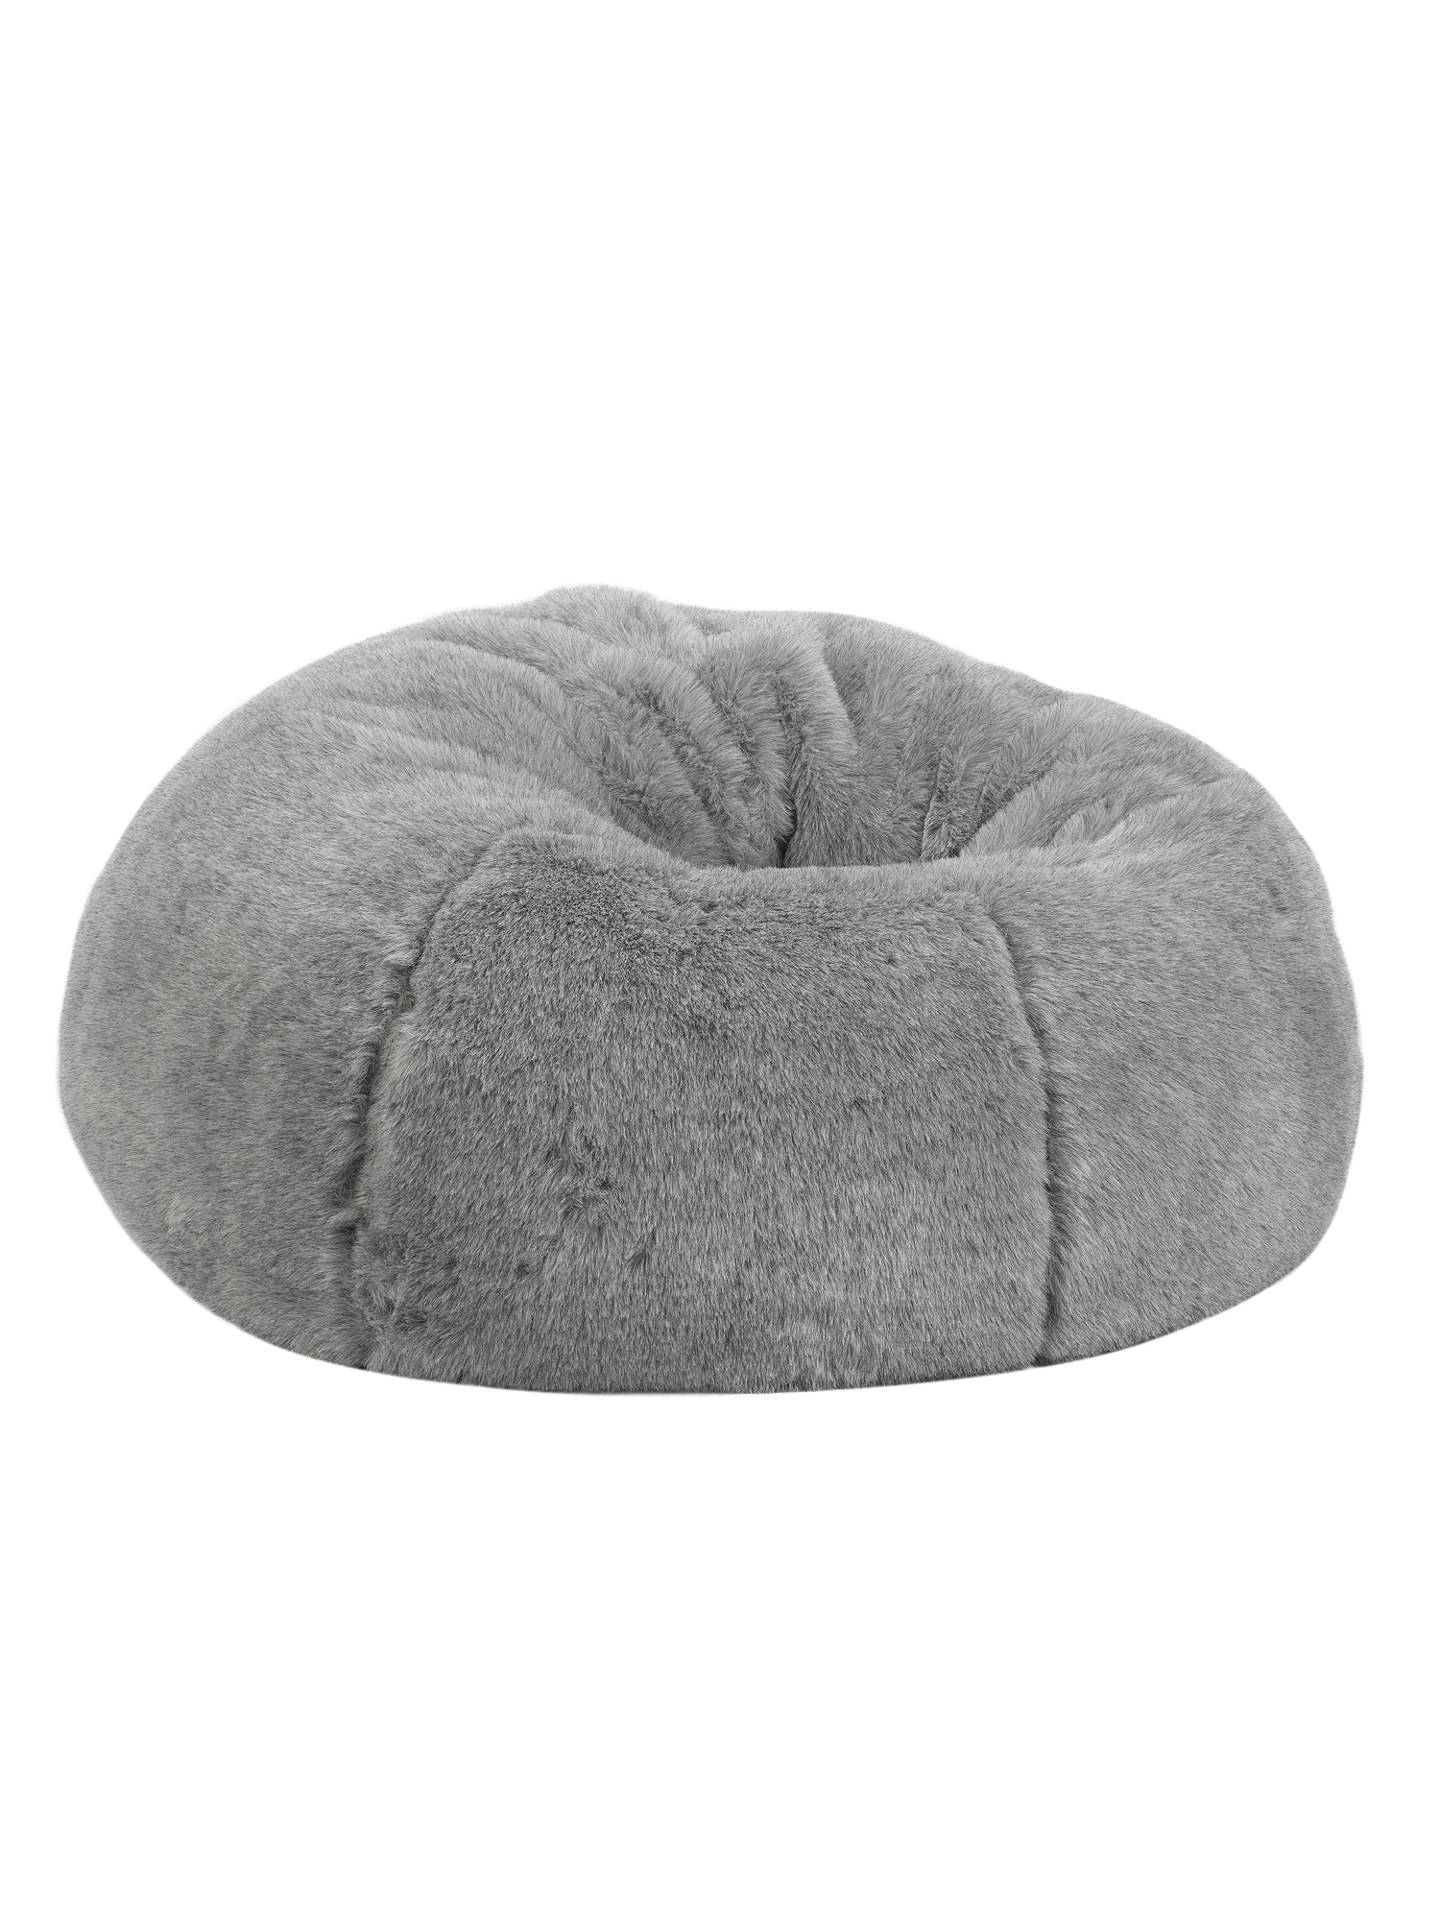 Marvelous John Lewis Partners Faux Fur Extra Large Bean Bag Grey Evergreenethics Interior Chair Design Evergreenethicsorg